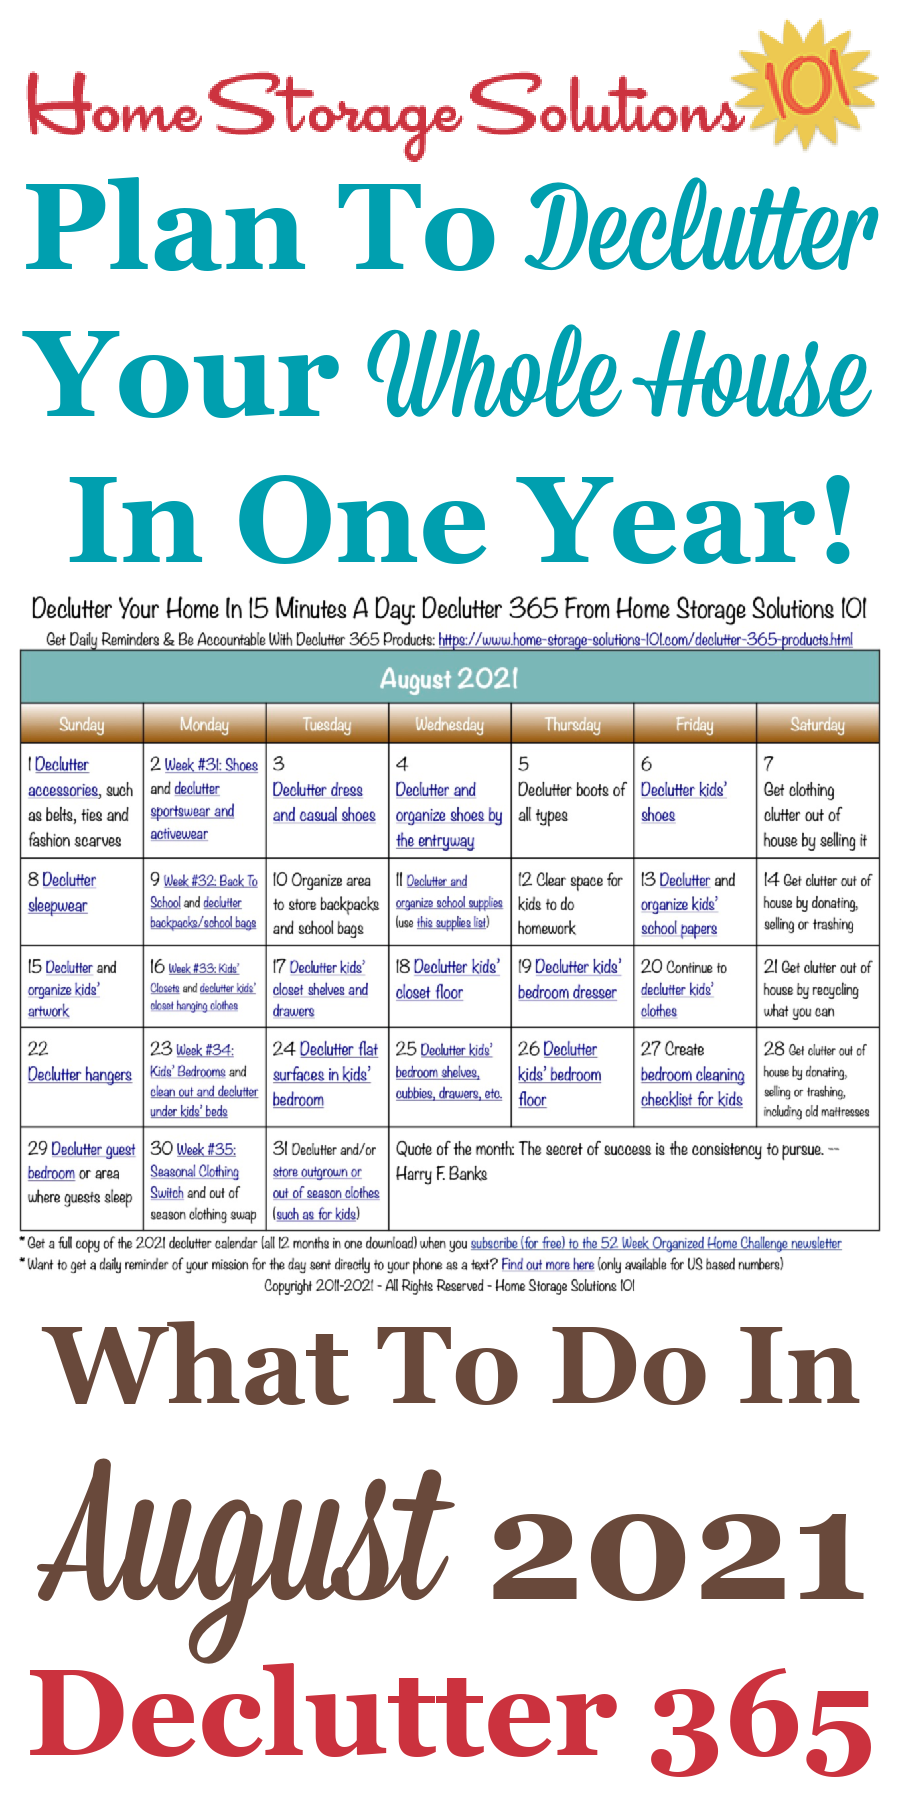 Free printable August 2021 #decluttering calendar with daily 15 minute missions. Follow the entire #Declutter365 plan provided by Home Storage Solutions 101 to #declutter your whole house in a year.